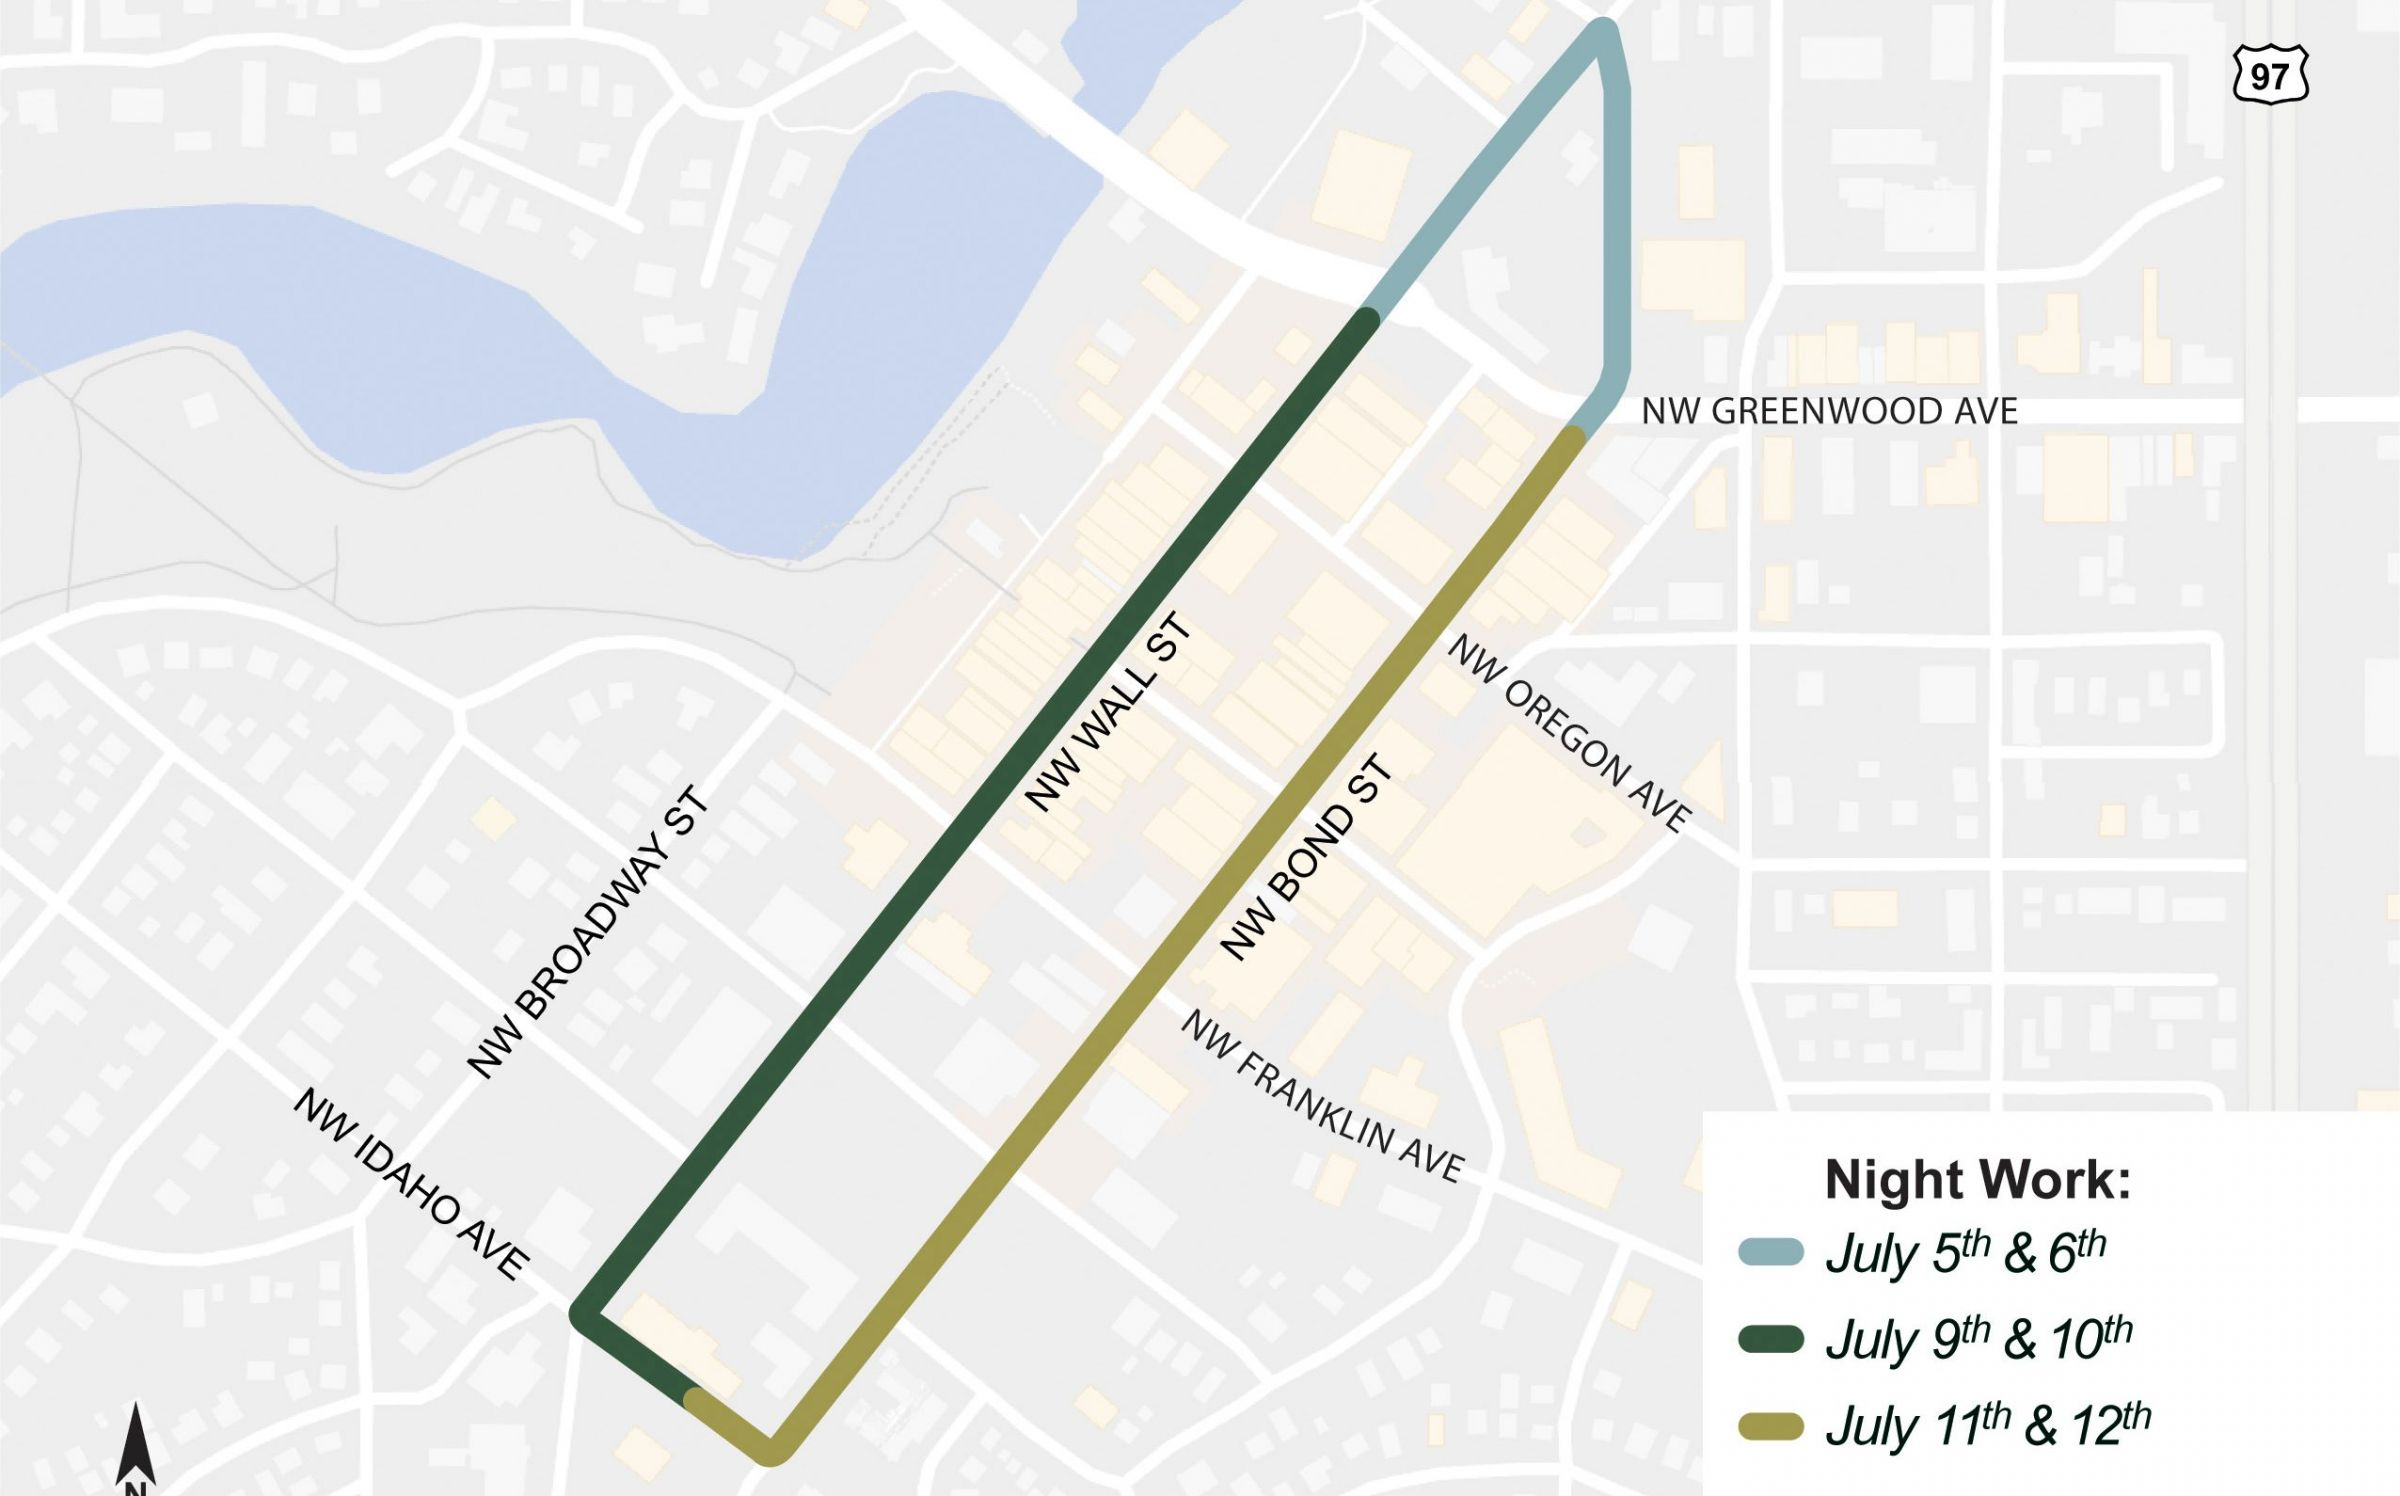 Night Work To Close Downtown Bend Streets